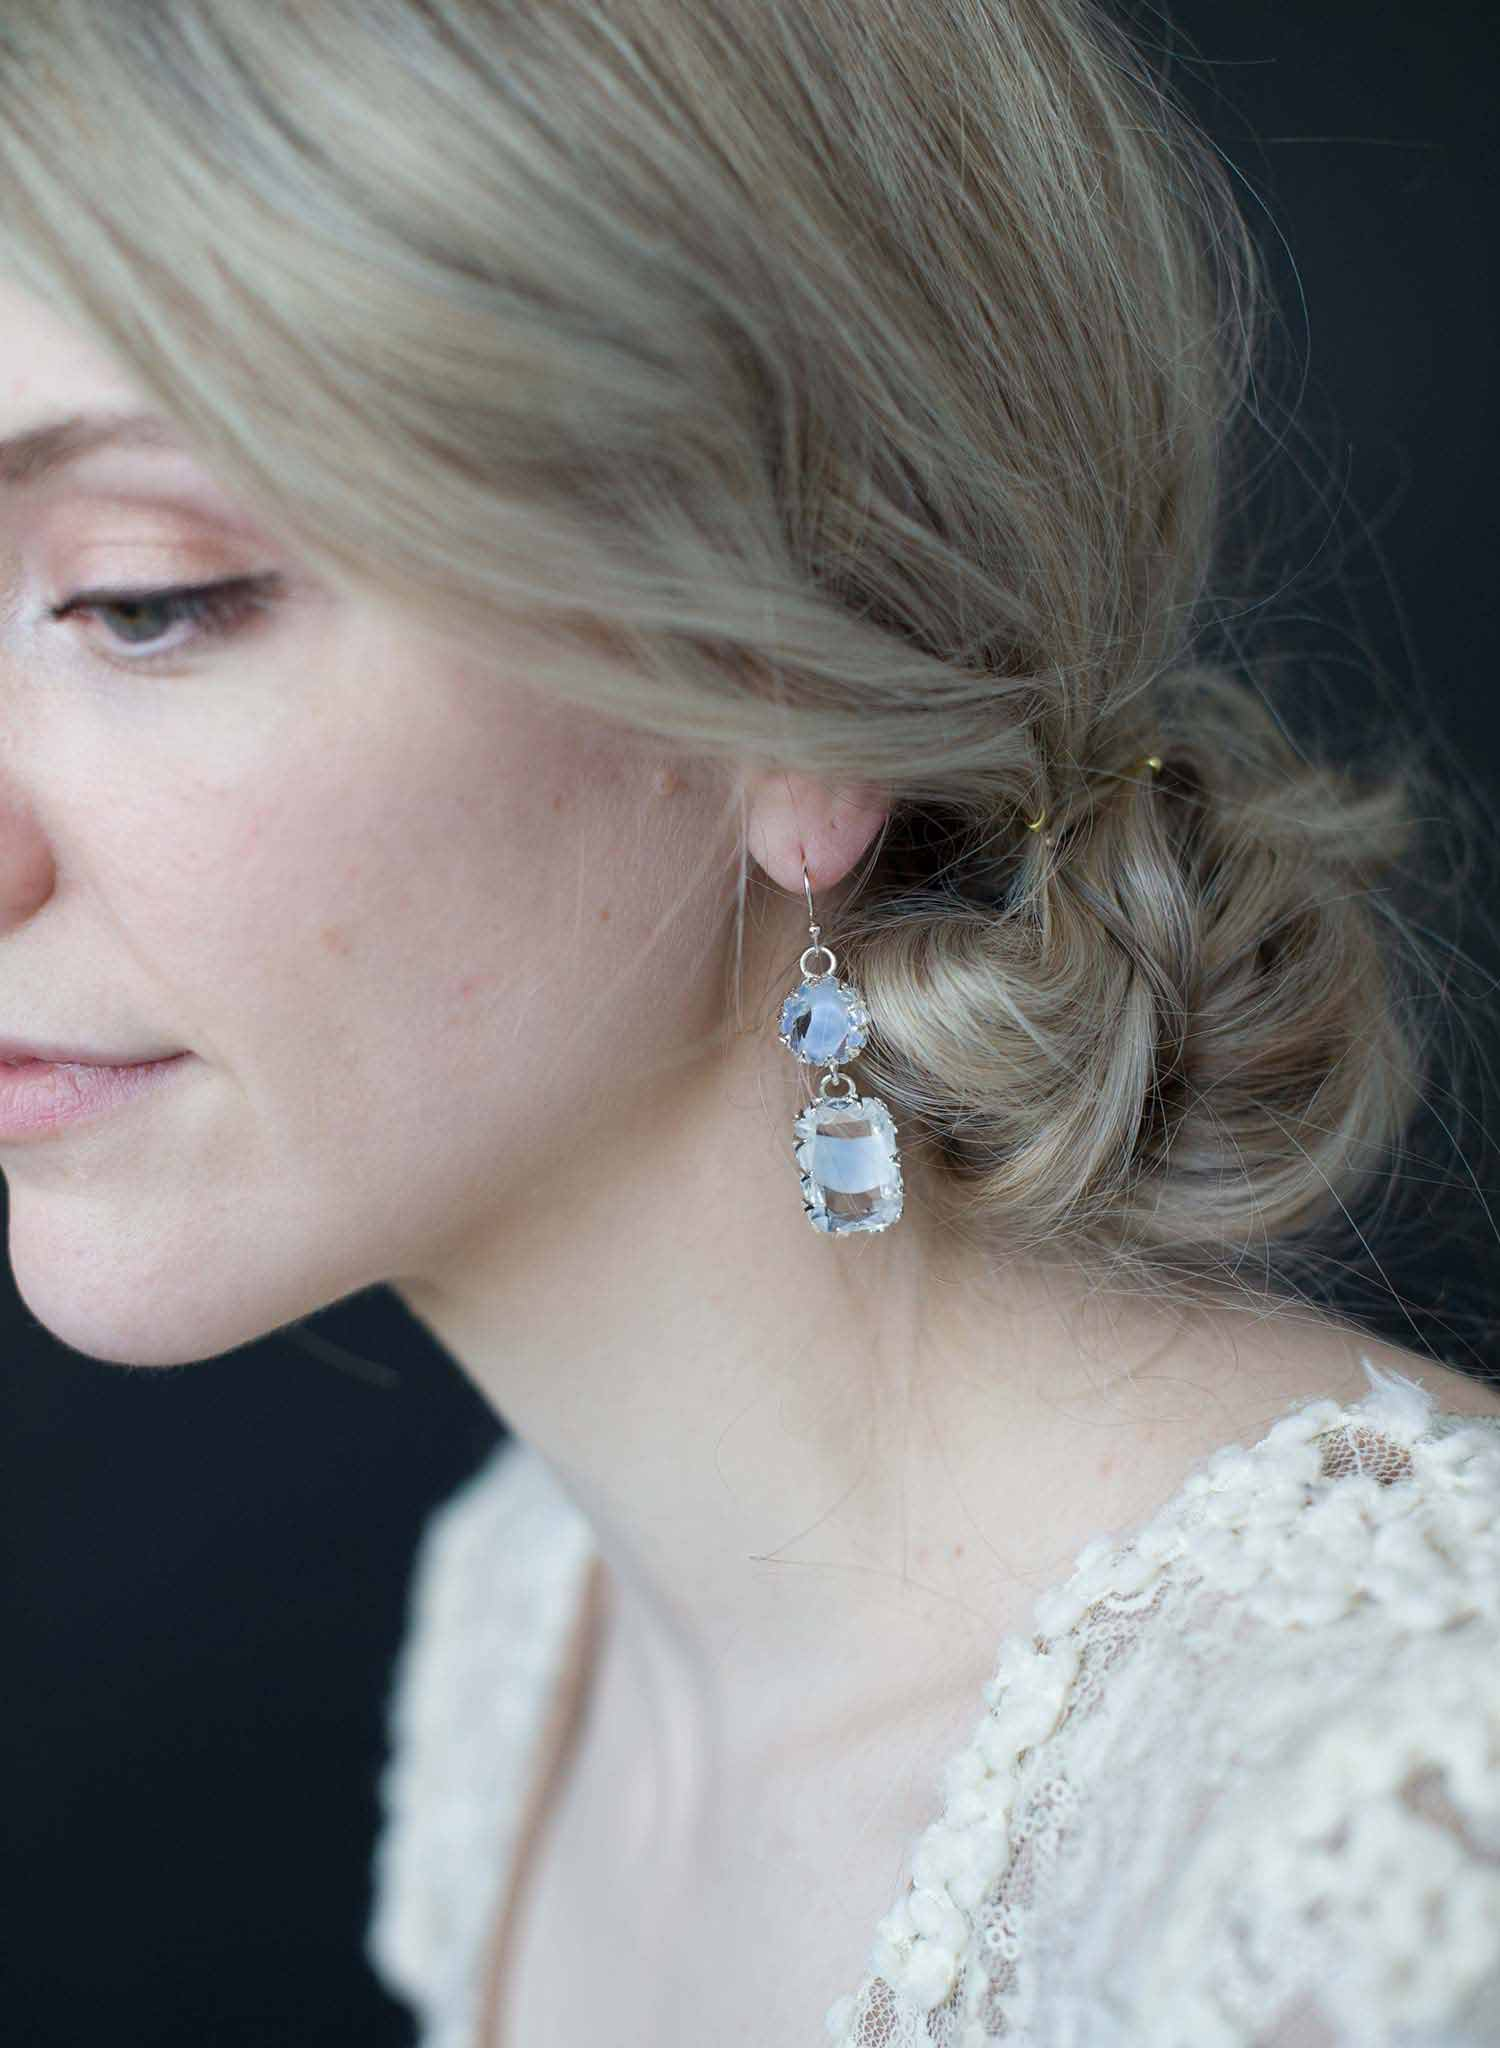 Pale blue vintage crown setting earrings   - Style #9019